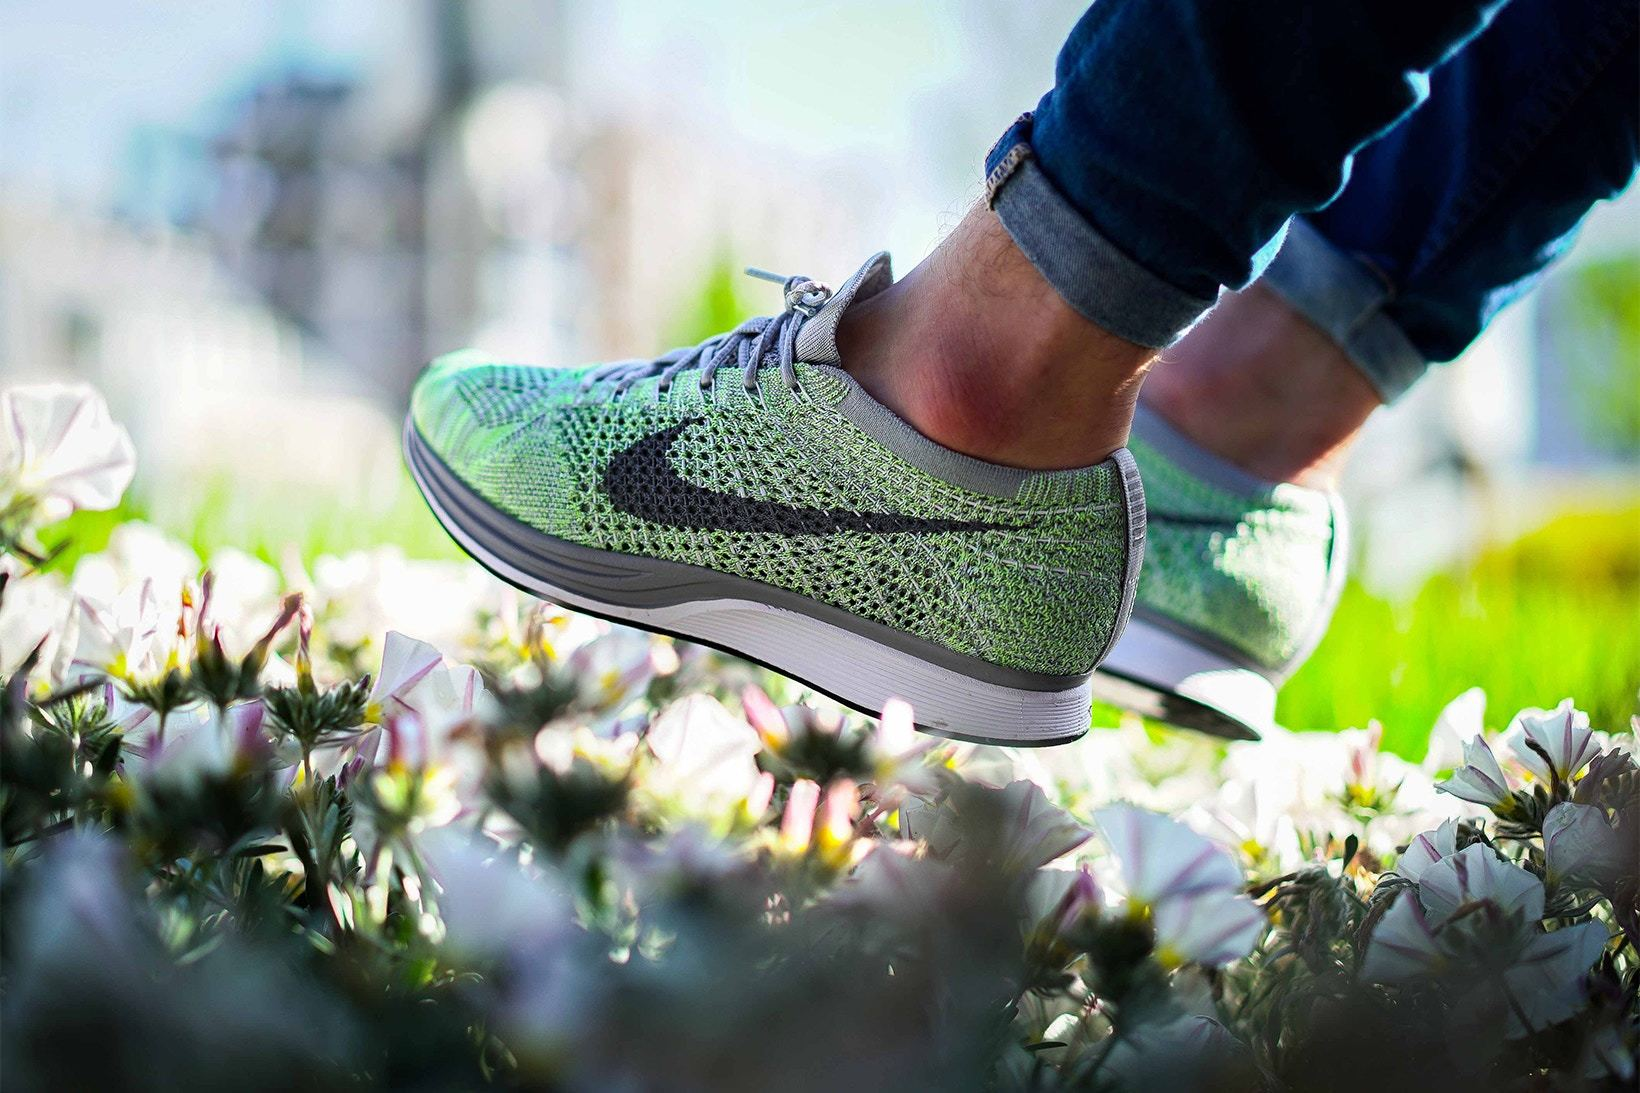 8eda9c111f241 ... Nike-Flyknit-Racer-Macaron-Pack-On-Foot-Shots- ...